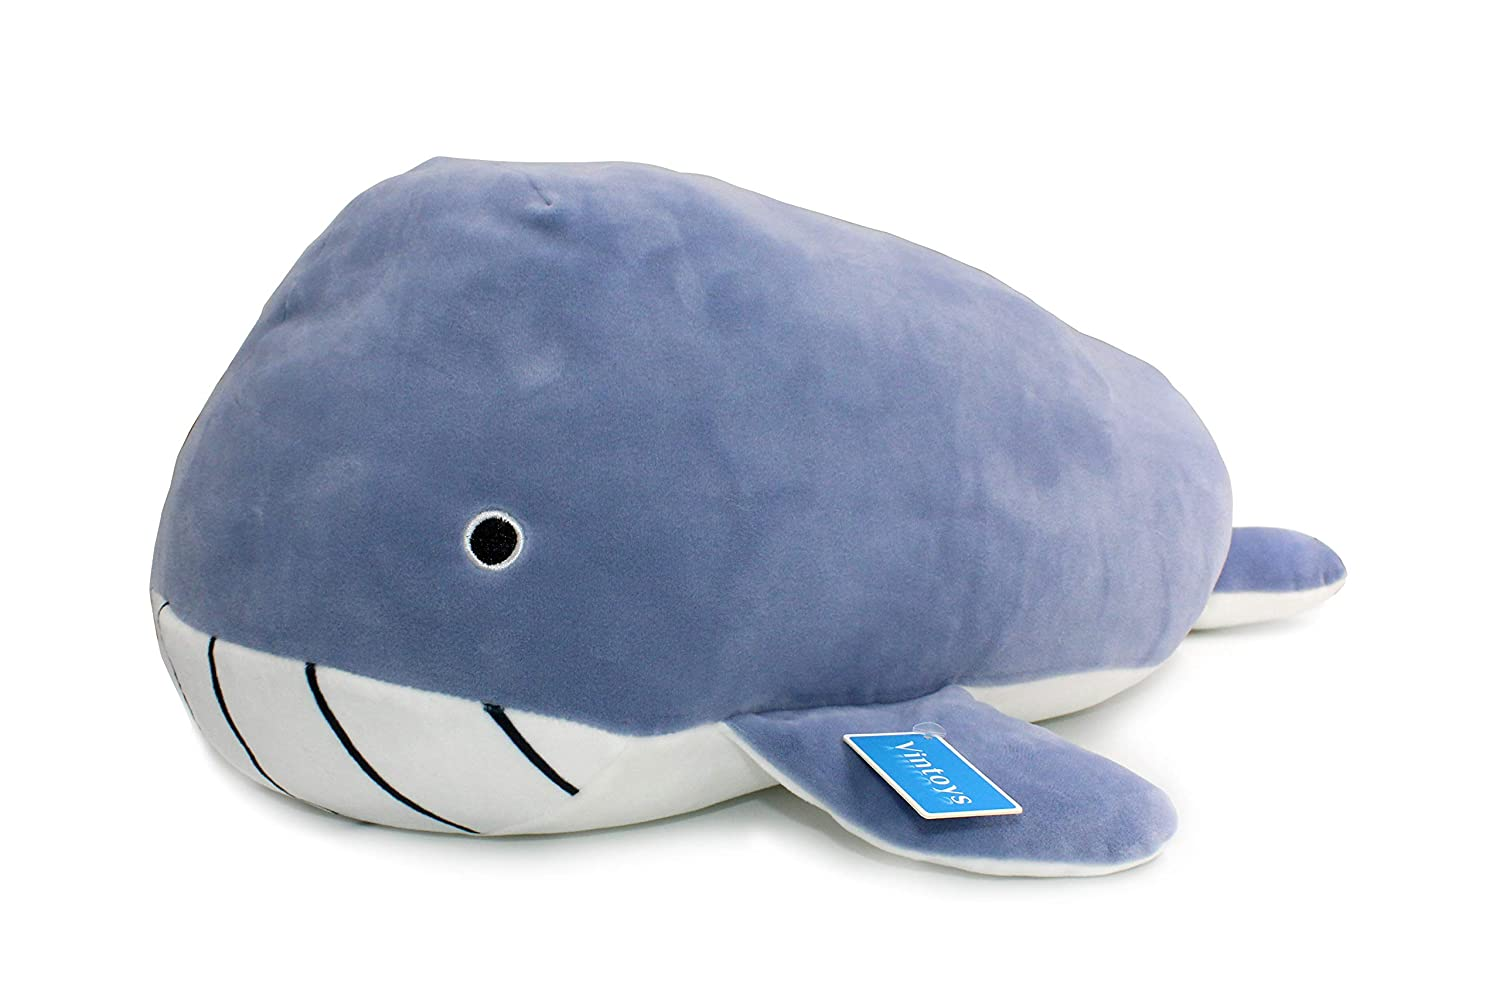 Vintoys Very Soft Blue Whale Shark Hugging Pillow Plush Doll Fish Plush Toy Stuffed Animals 21""